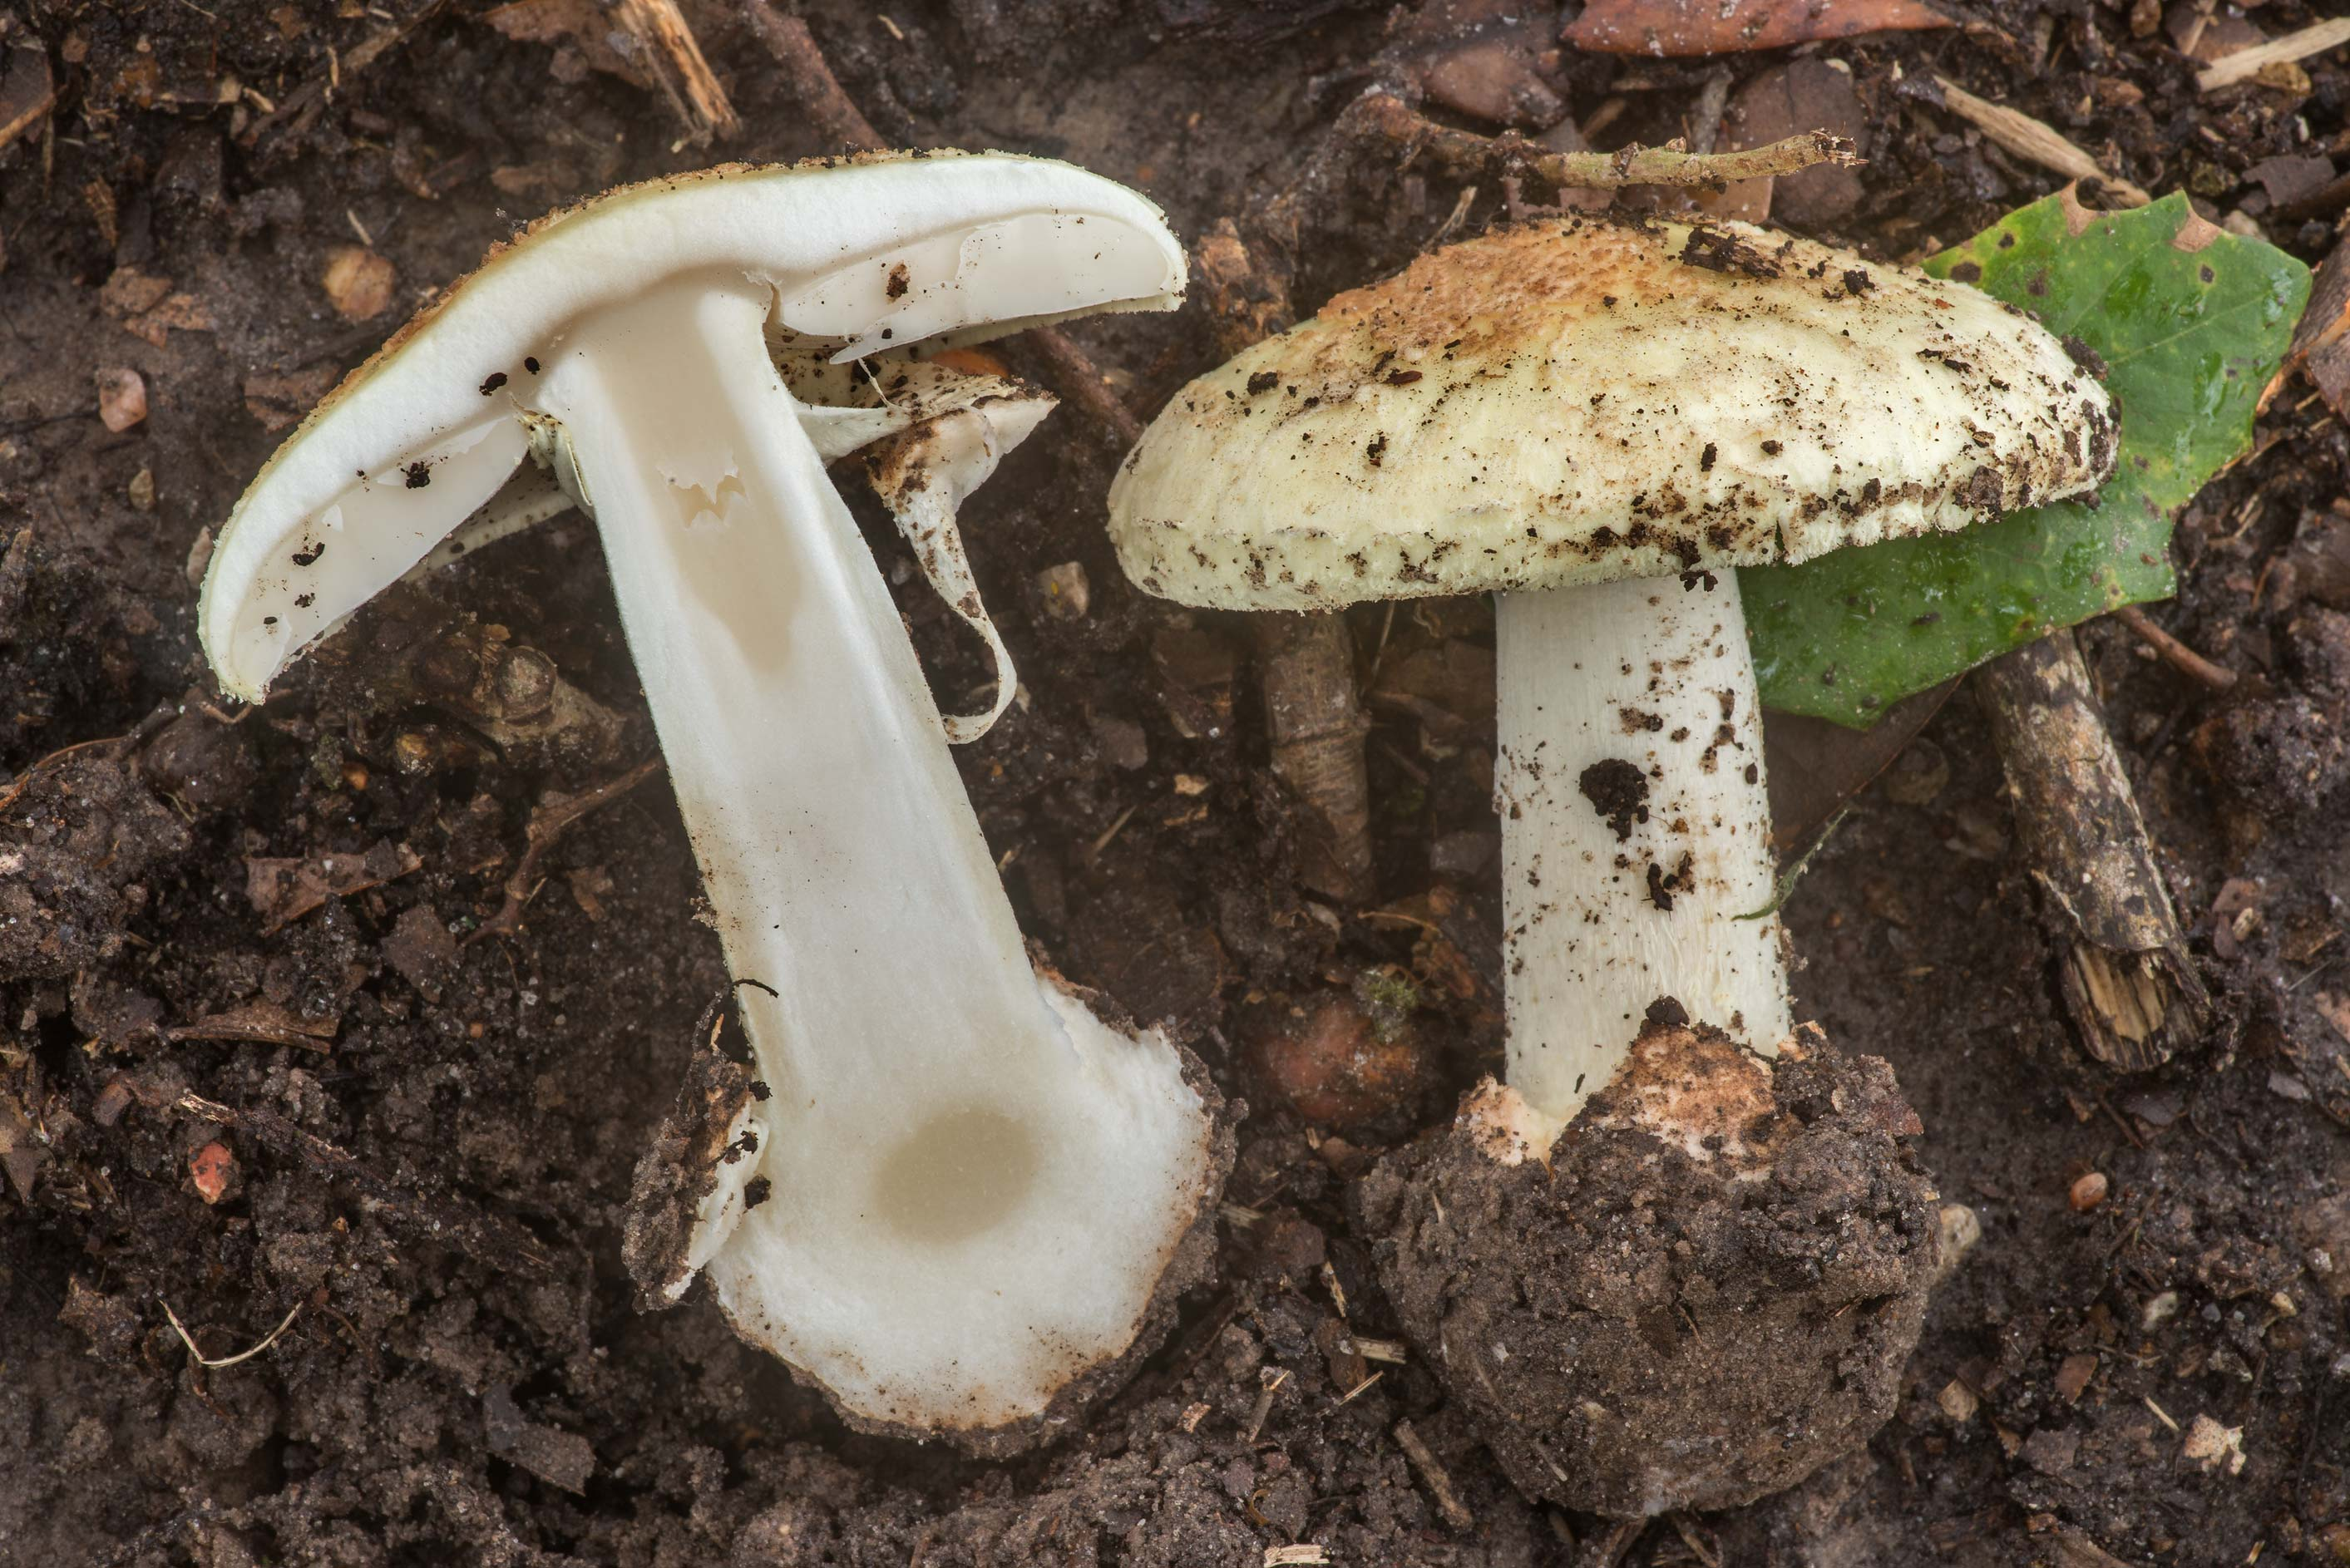 Dissected mushroom of Amanita lavendula group...city cemetery. College Station, Texas